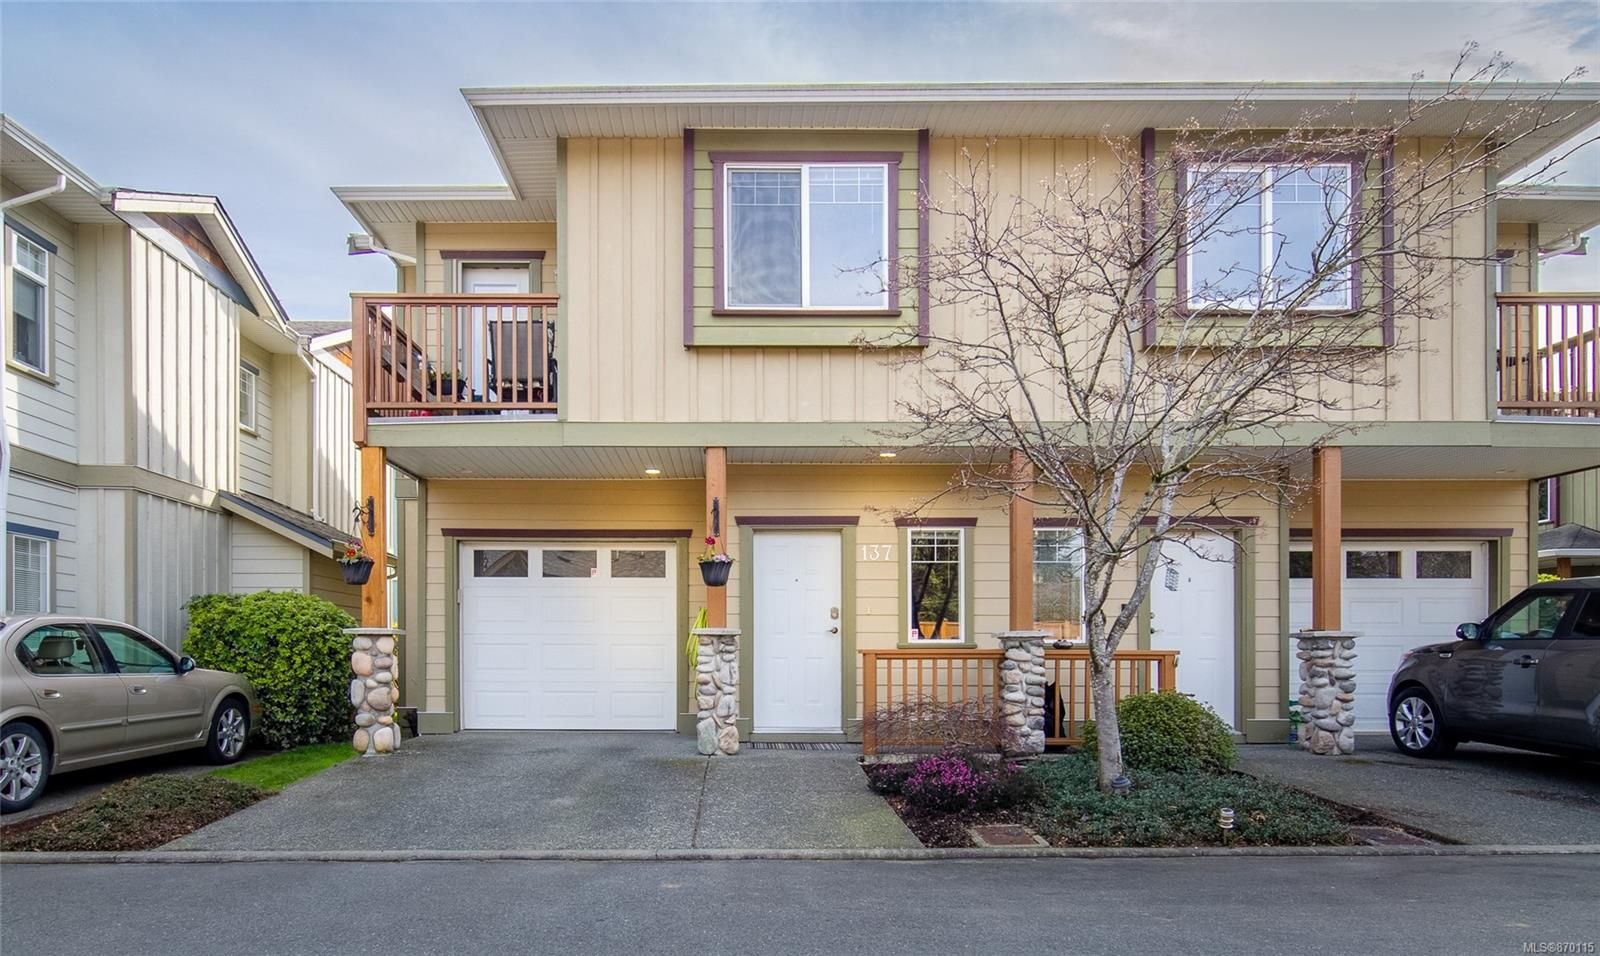 Main Photo: 137 951 Goldstream Ave in : La Goldstream Row/Townhouse for sale (Langford)  : MLS®# 870115